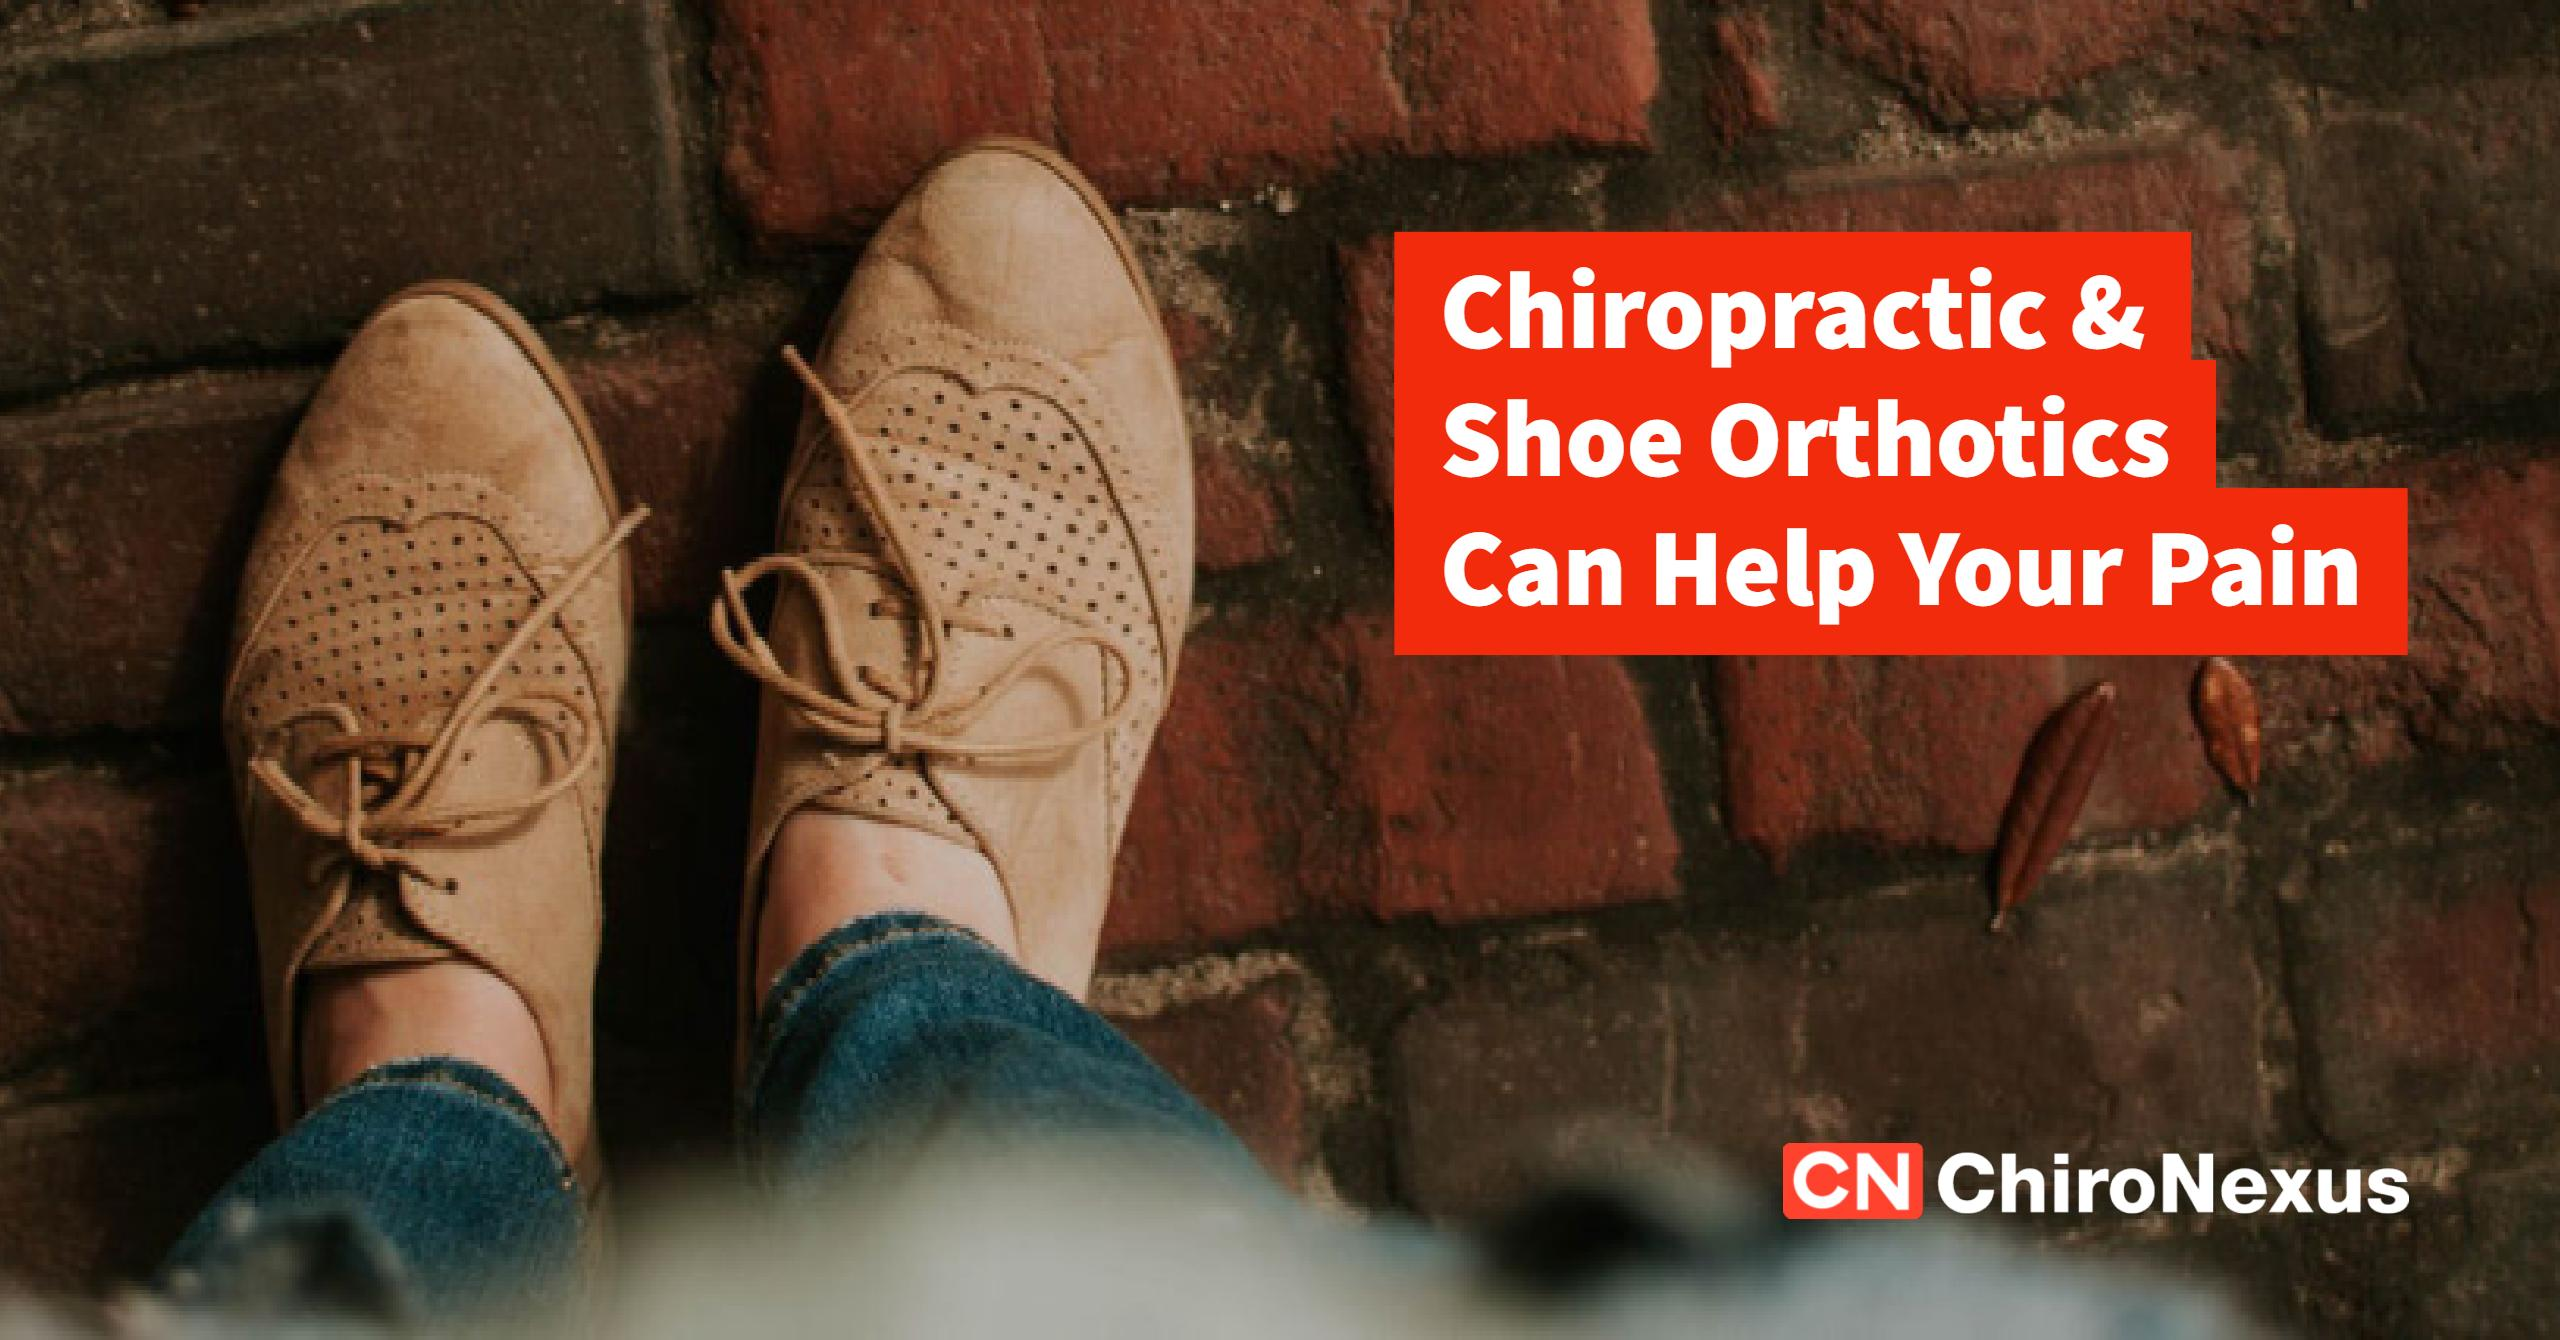 ChiroNexus - Chiropractic and Shoe Orthotics Can Help Your Pain - Featured Image